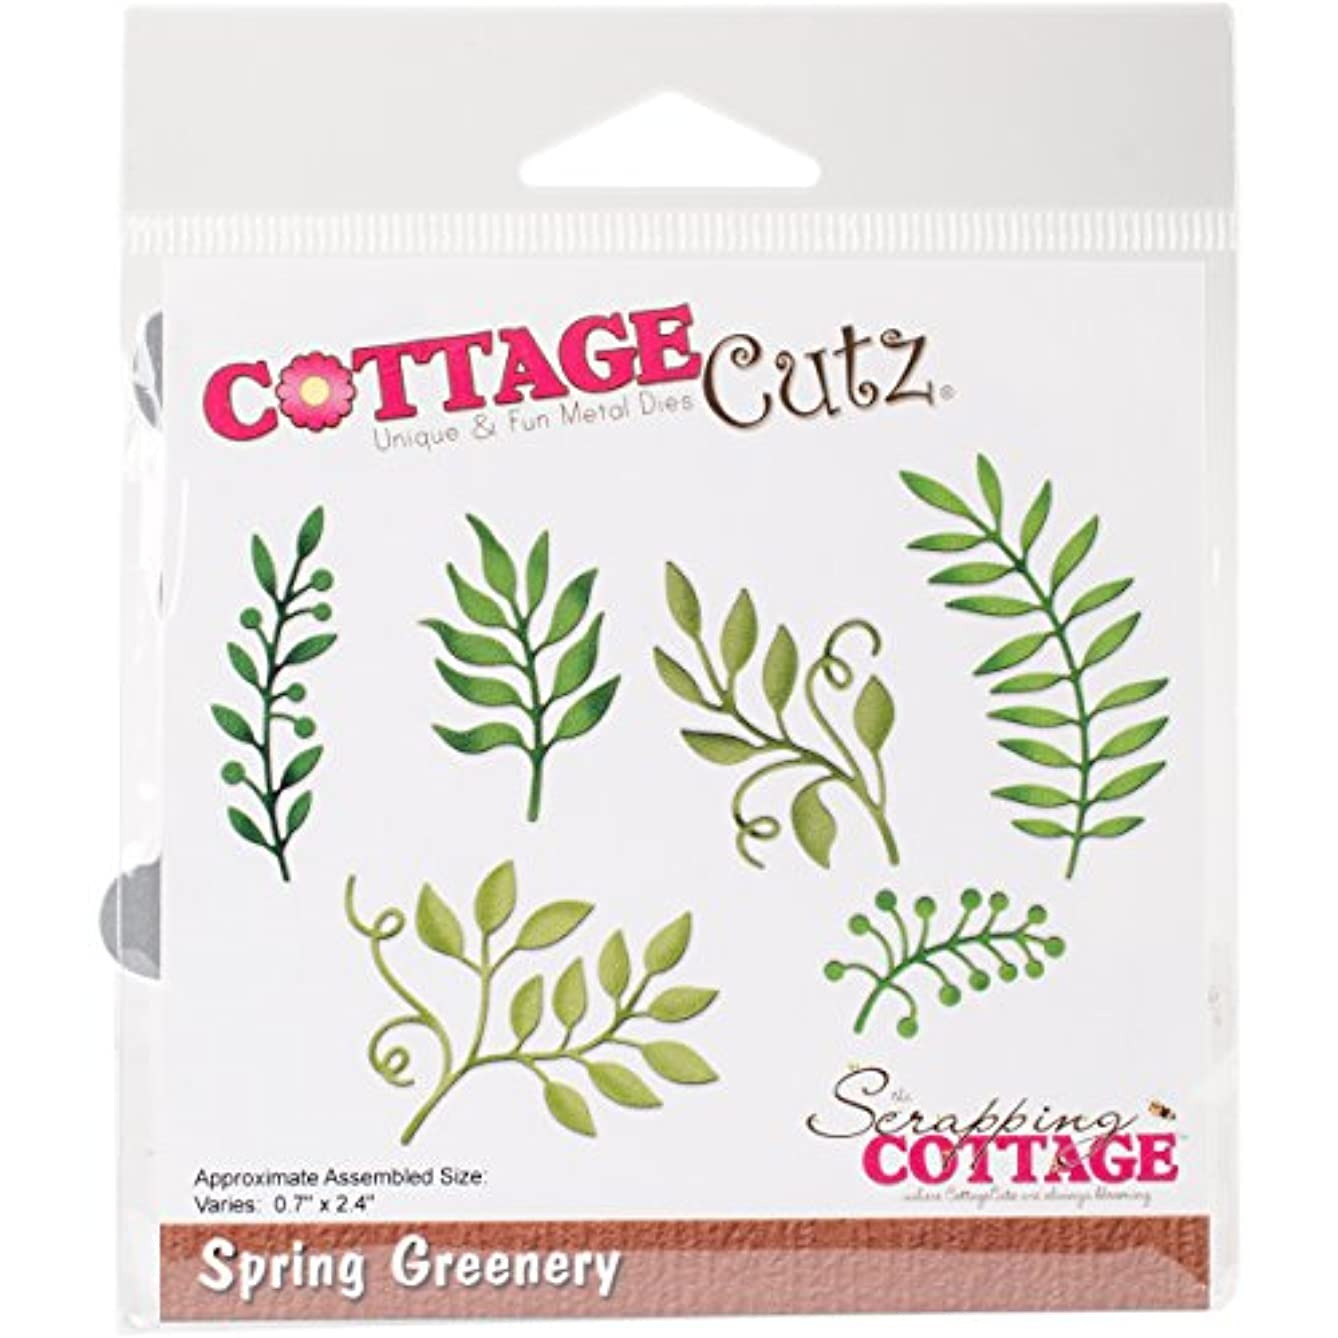 CottageCutz CC-244 Die-Spring Greenery, 0.7 inches to 2.4 inches